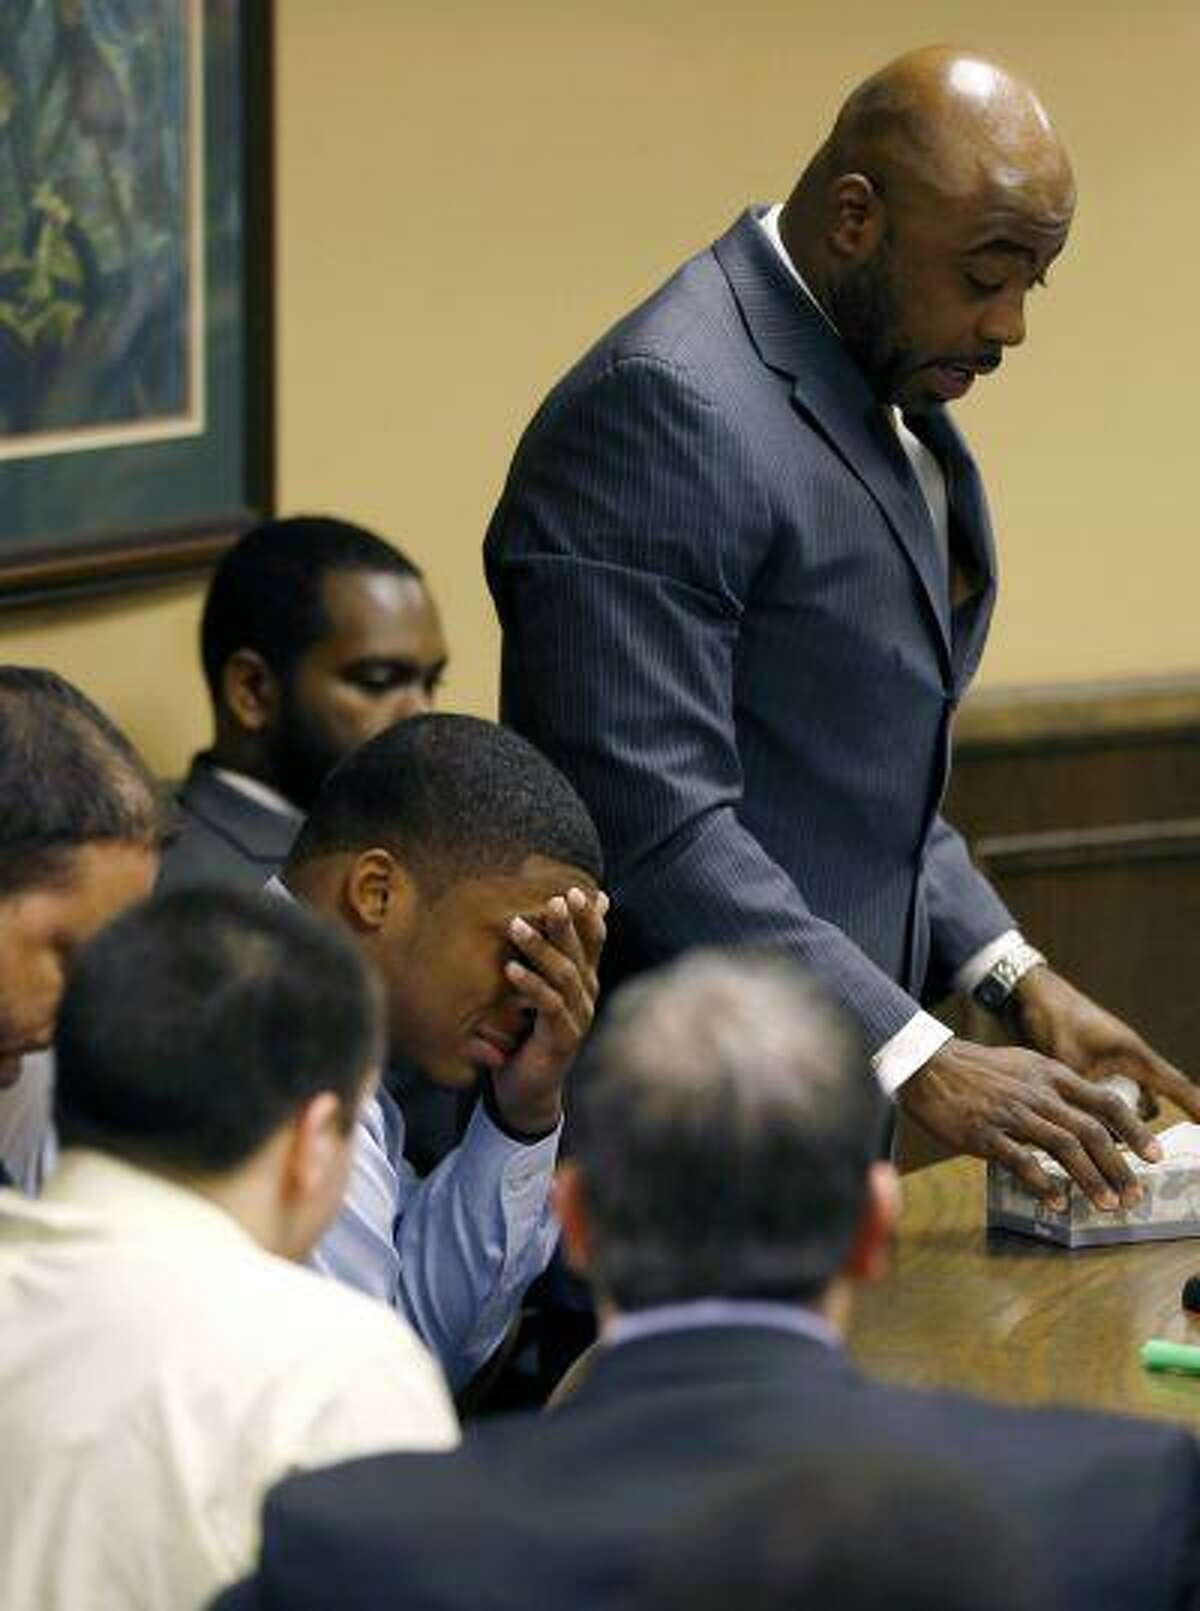 Ma'Lik Richmond covers his eyes and cries as his attorney Walter Madison, standing, asks the court for leniency after Richmond and co-defendant Trent Mays, lower left, were found delinquent on rape and other charges after their trial in juvenile court in Steubenville, Ohio, March 17. Mays and Richmond were accused of raping a 16-year-old West Virginia girl in August 2012.